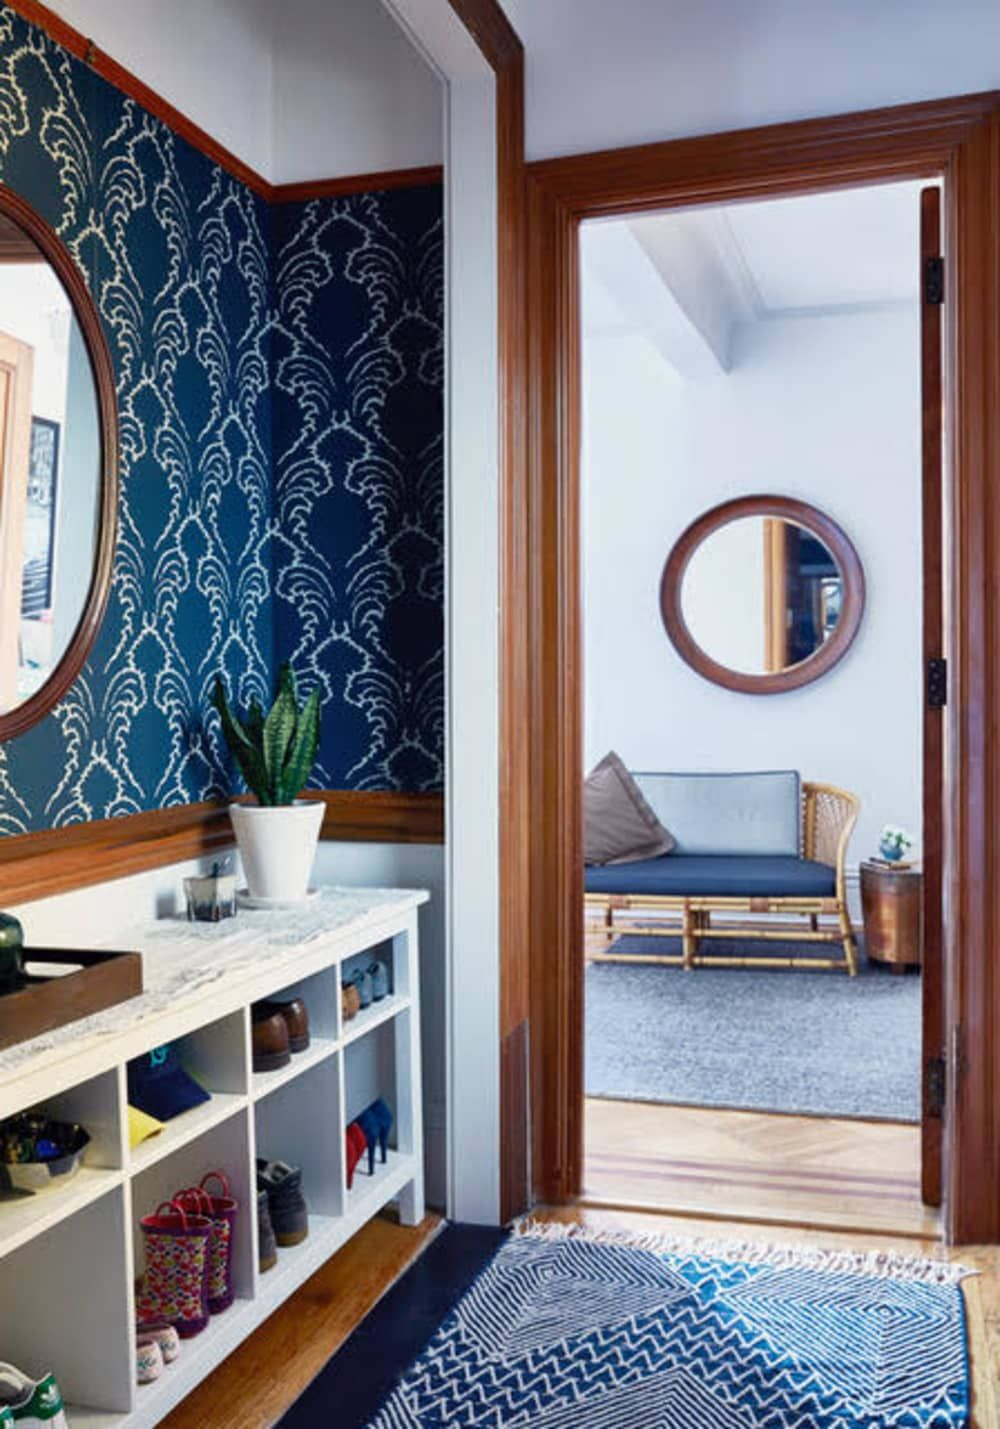 The 9 Best Sources for Outfitting Your Small Space in 2020